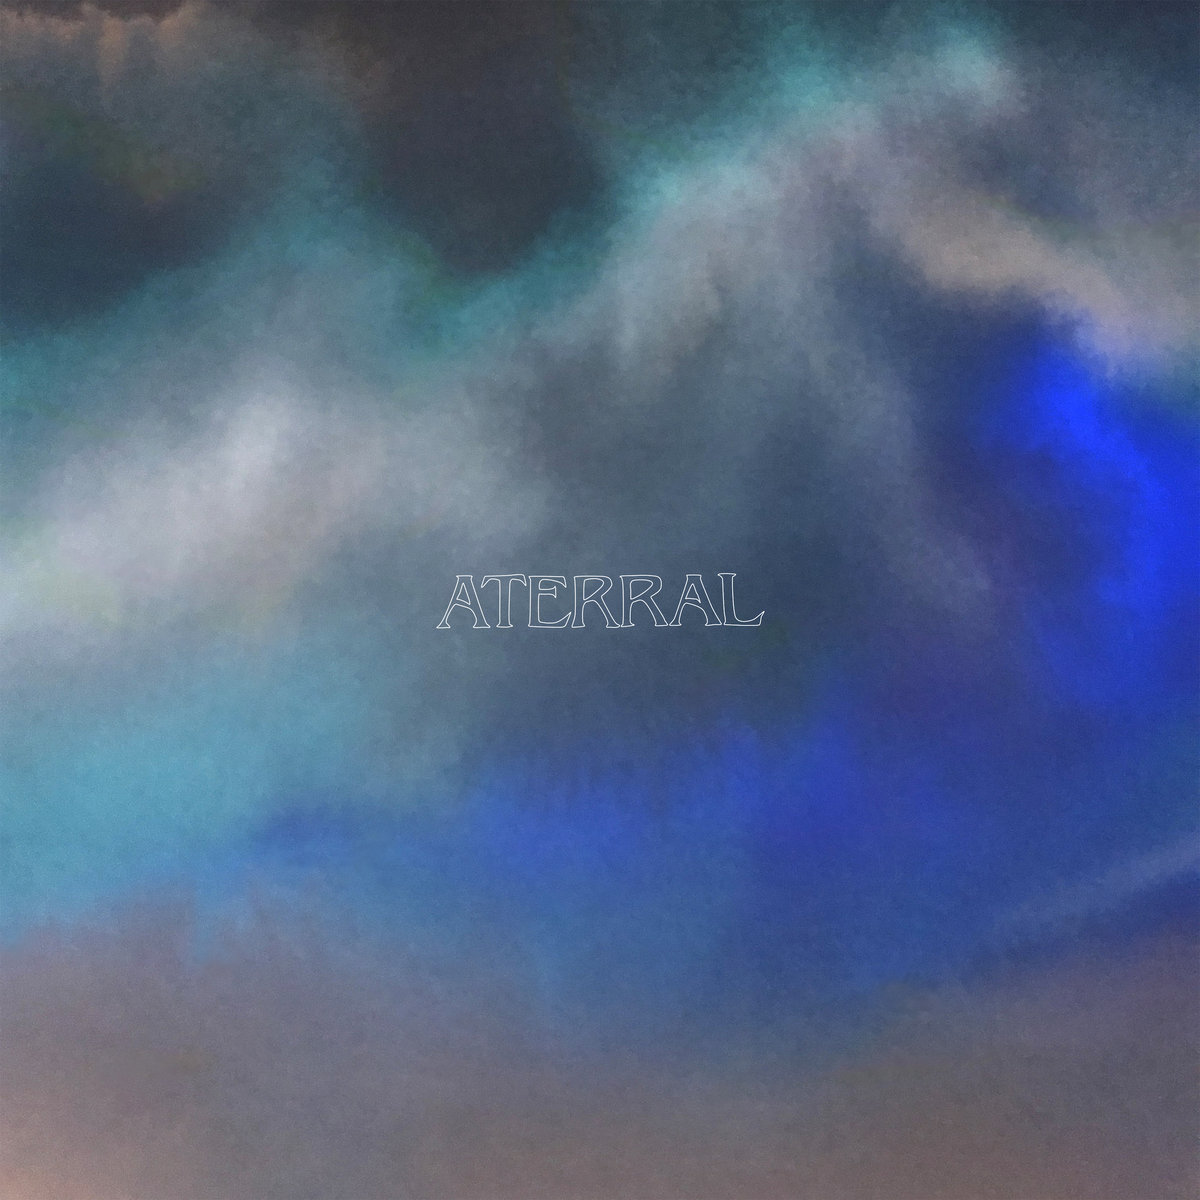 aterral_1